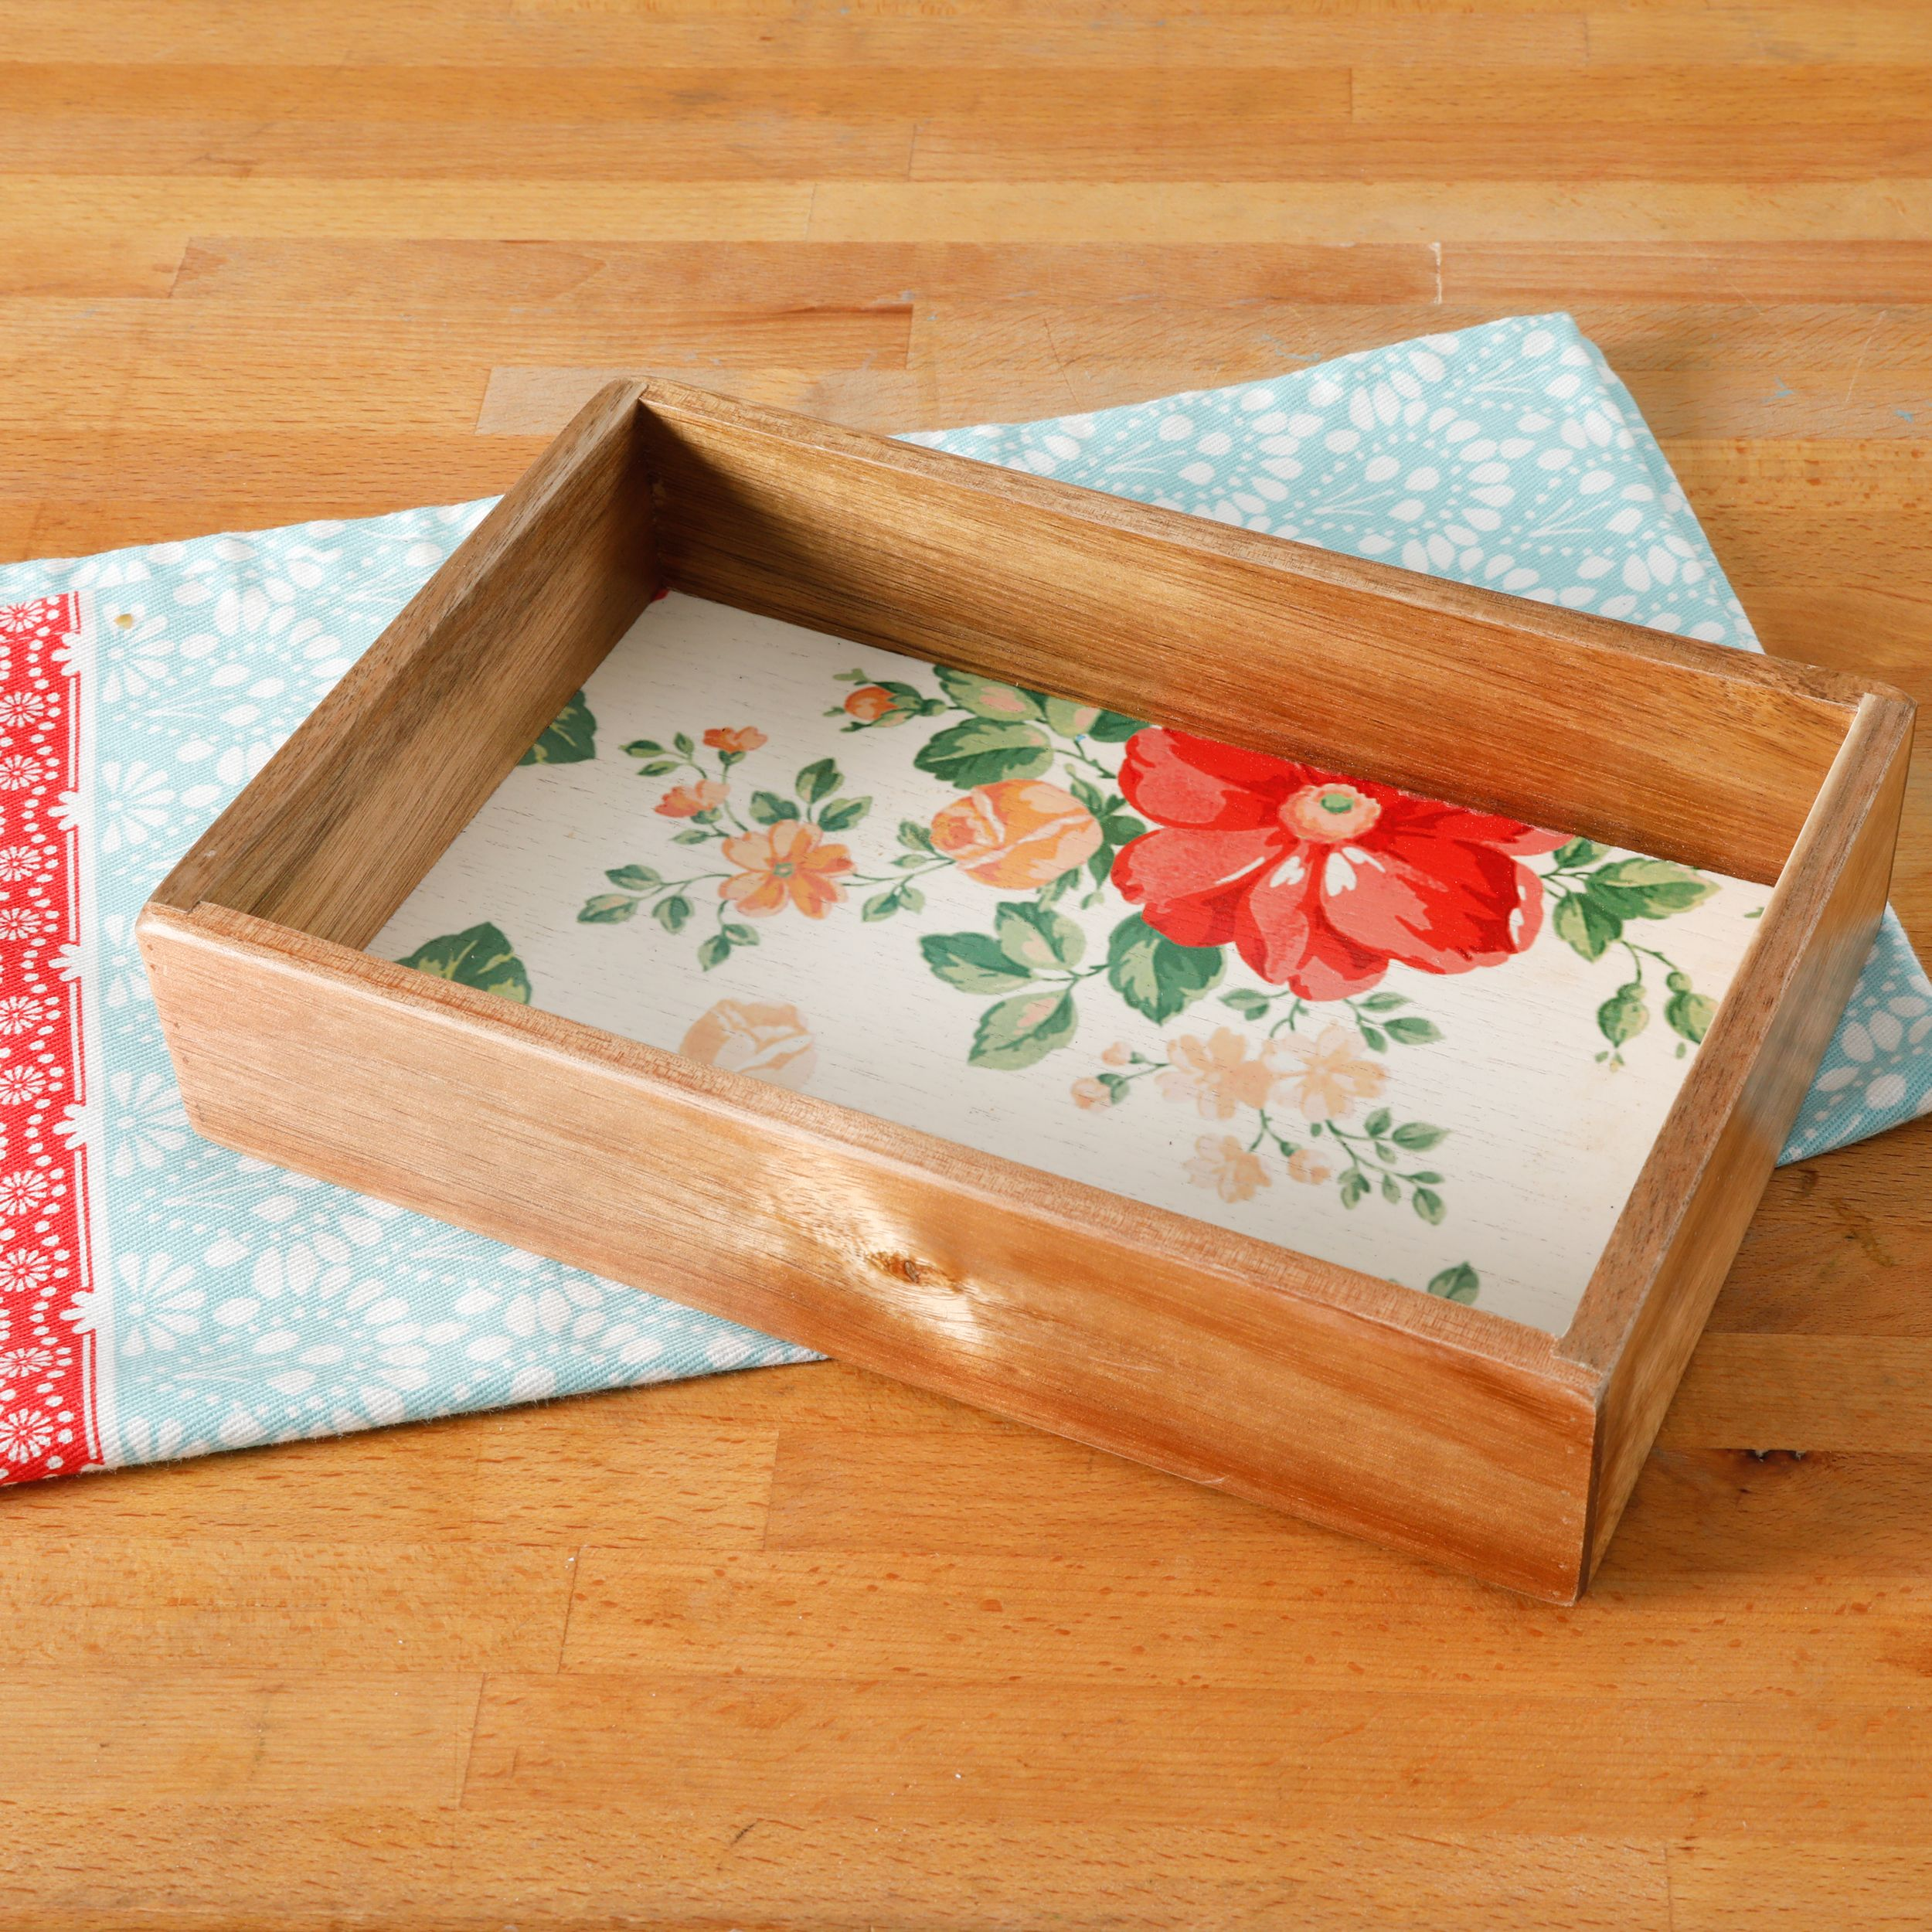 The Pioneer Woman Vintage Floral 6-Inch X 9-Inch Gadget Organizer